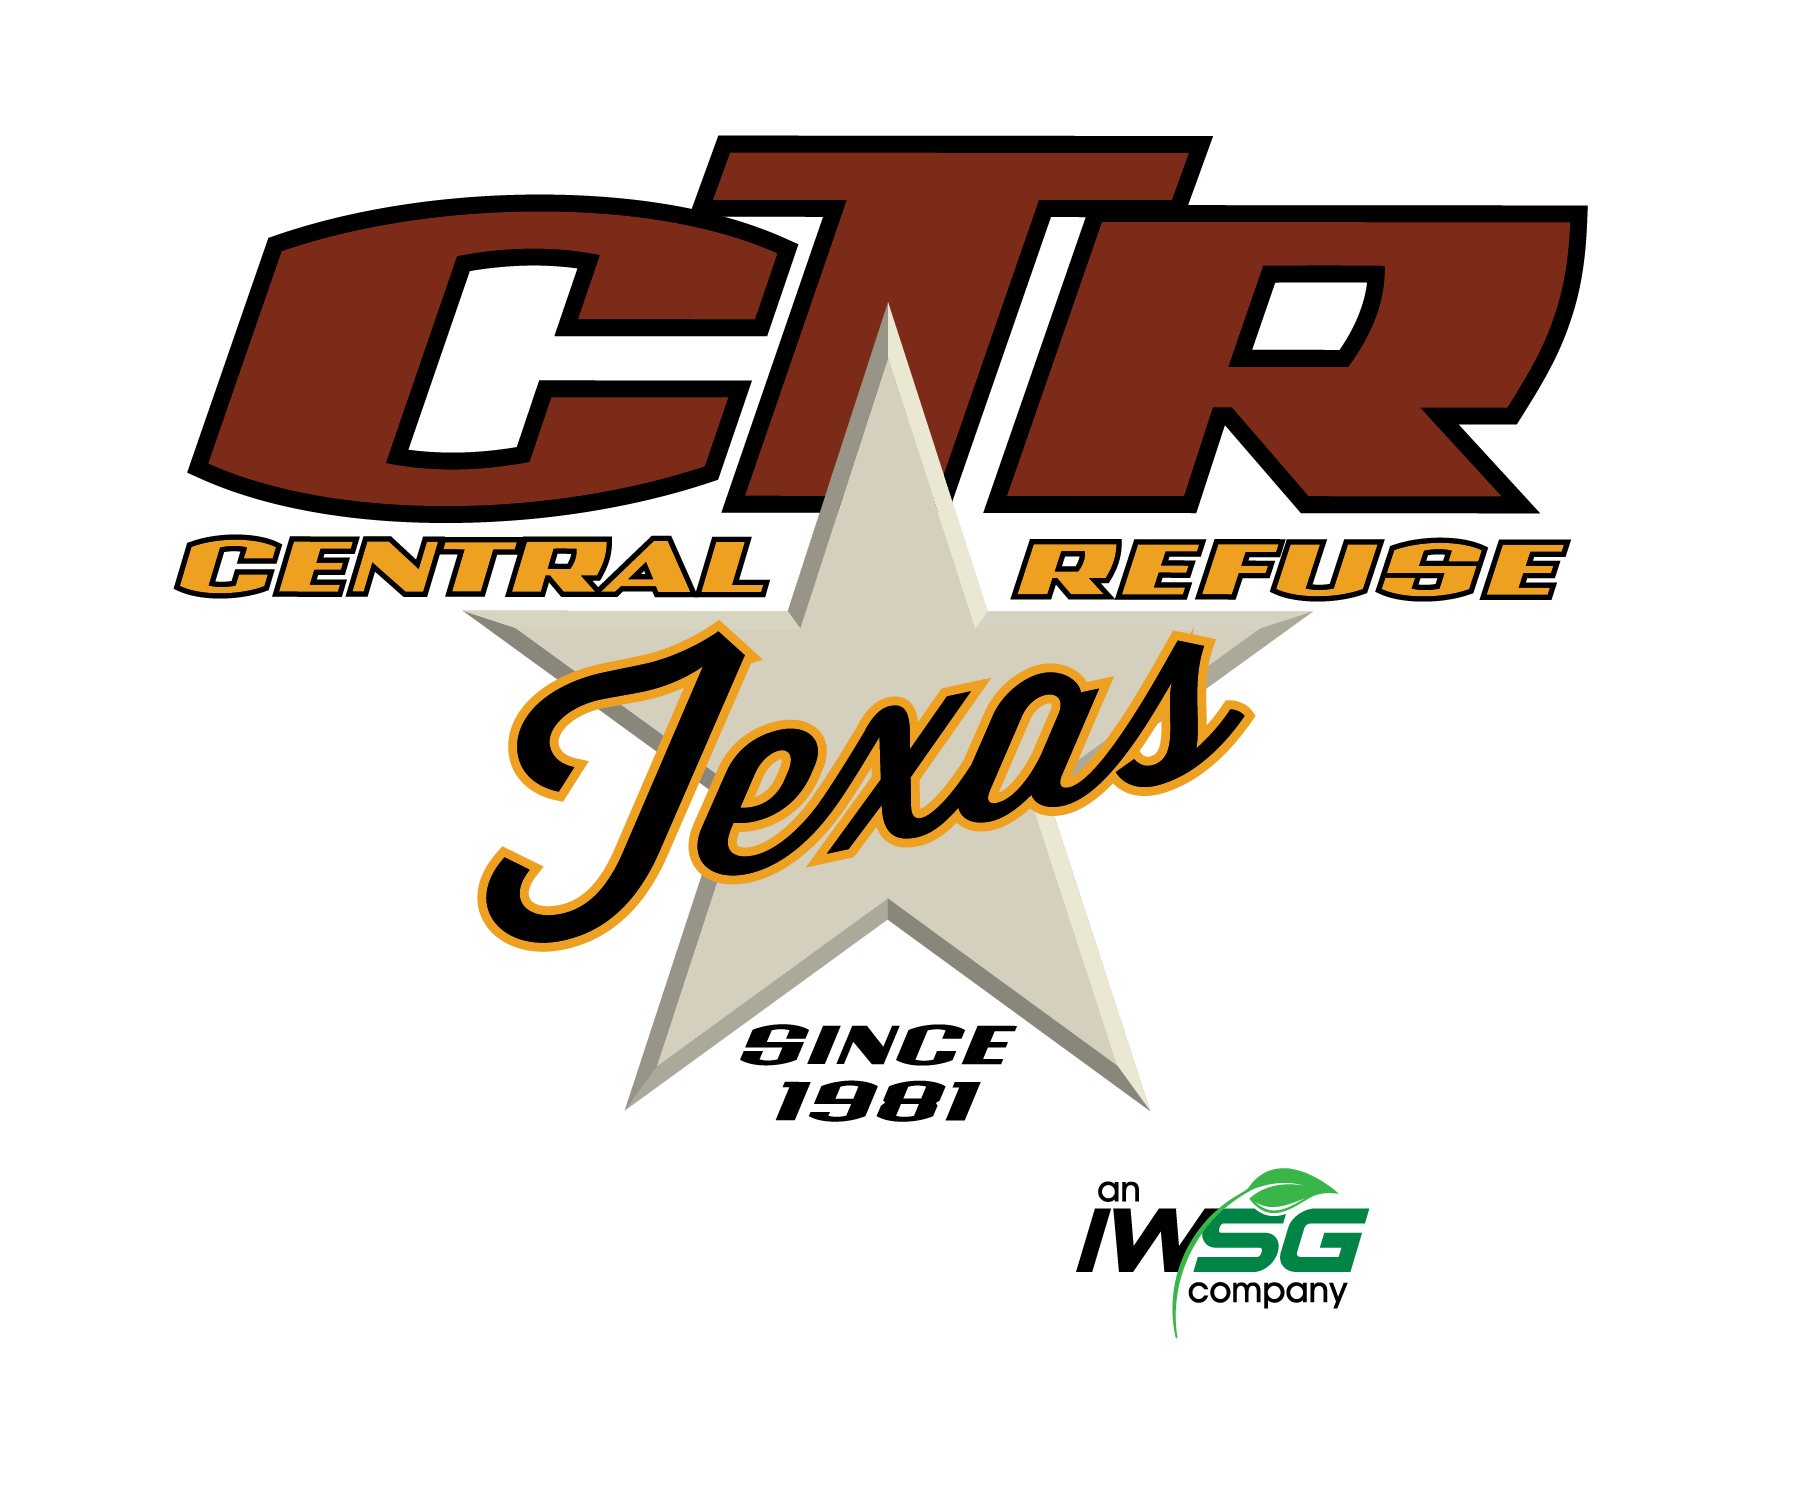 NEW Central Texas Refuse